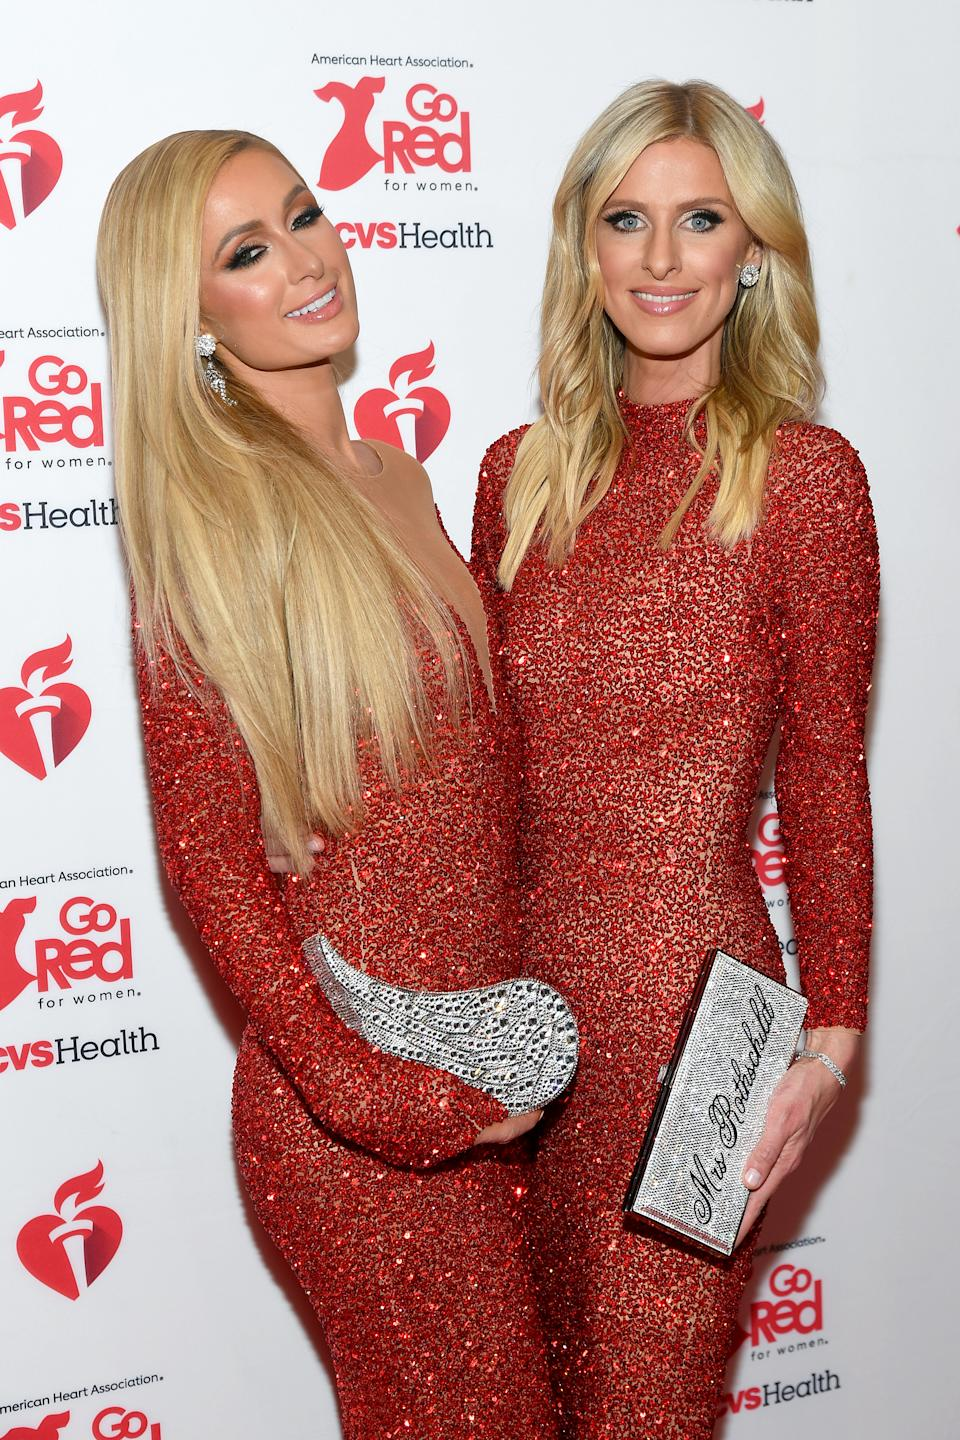 NEW YORK, NEW YORK - FEBRUARY 05: Paris Hilton and Nicky Hilton Rothschild attend The American Heart Association's Go Red for Women Red Dress Collection 2020 at Hammerstein Ballroom on February 05, 2020 in New York City. (Photo by Mike Coppola/Getty Images for American Heart Association )